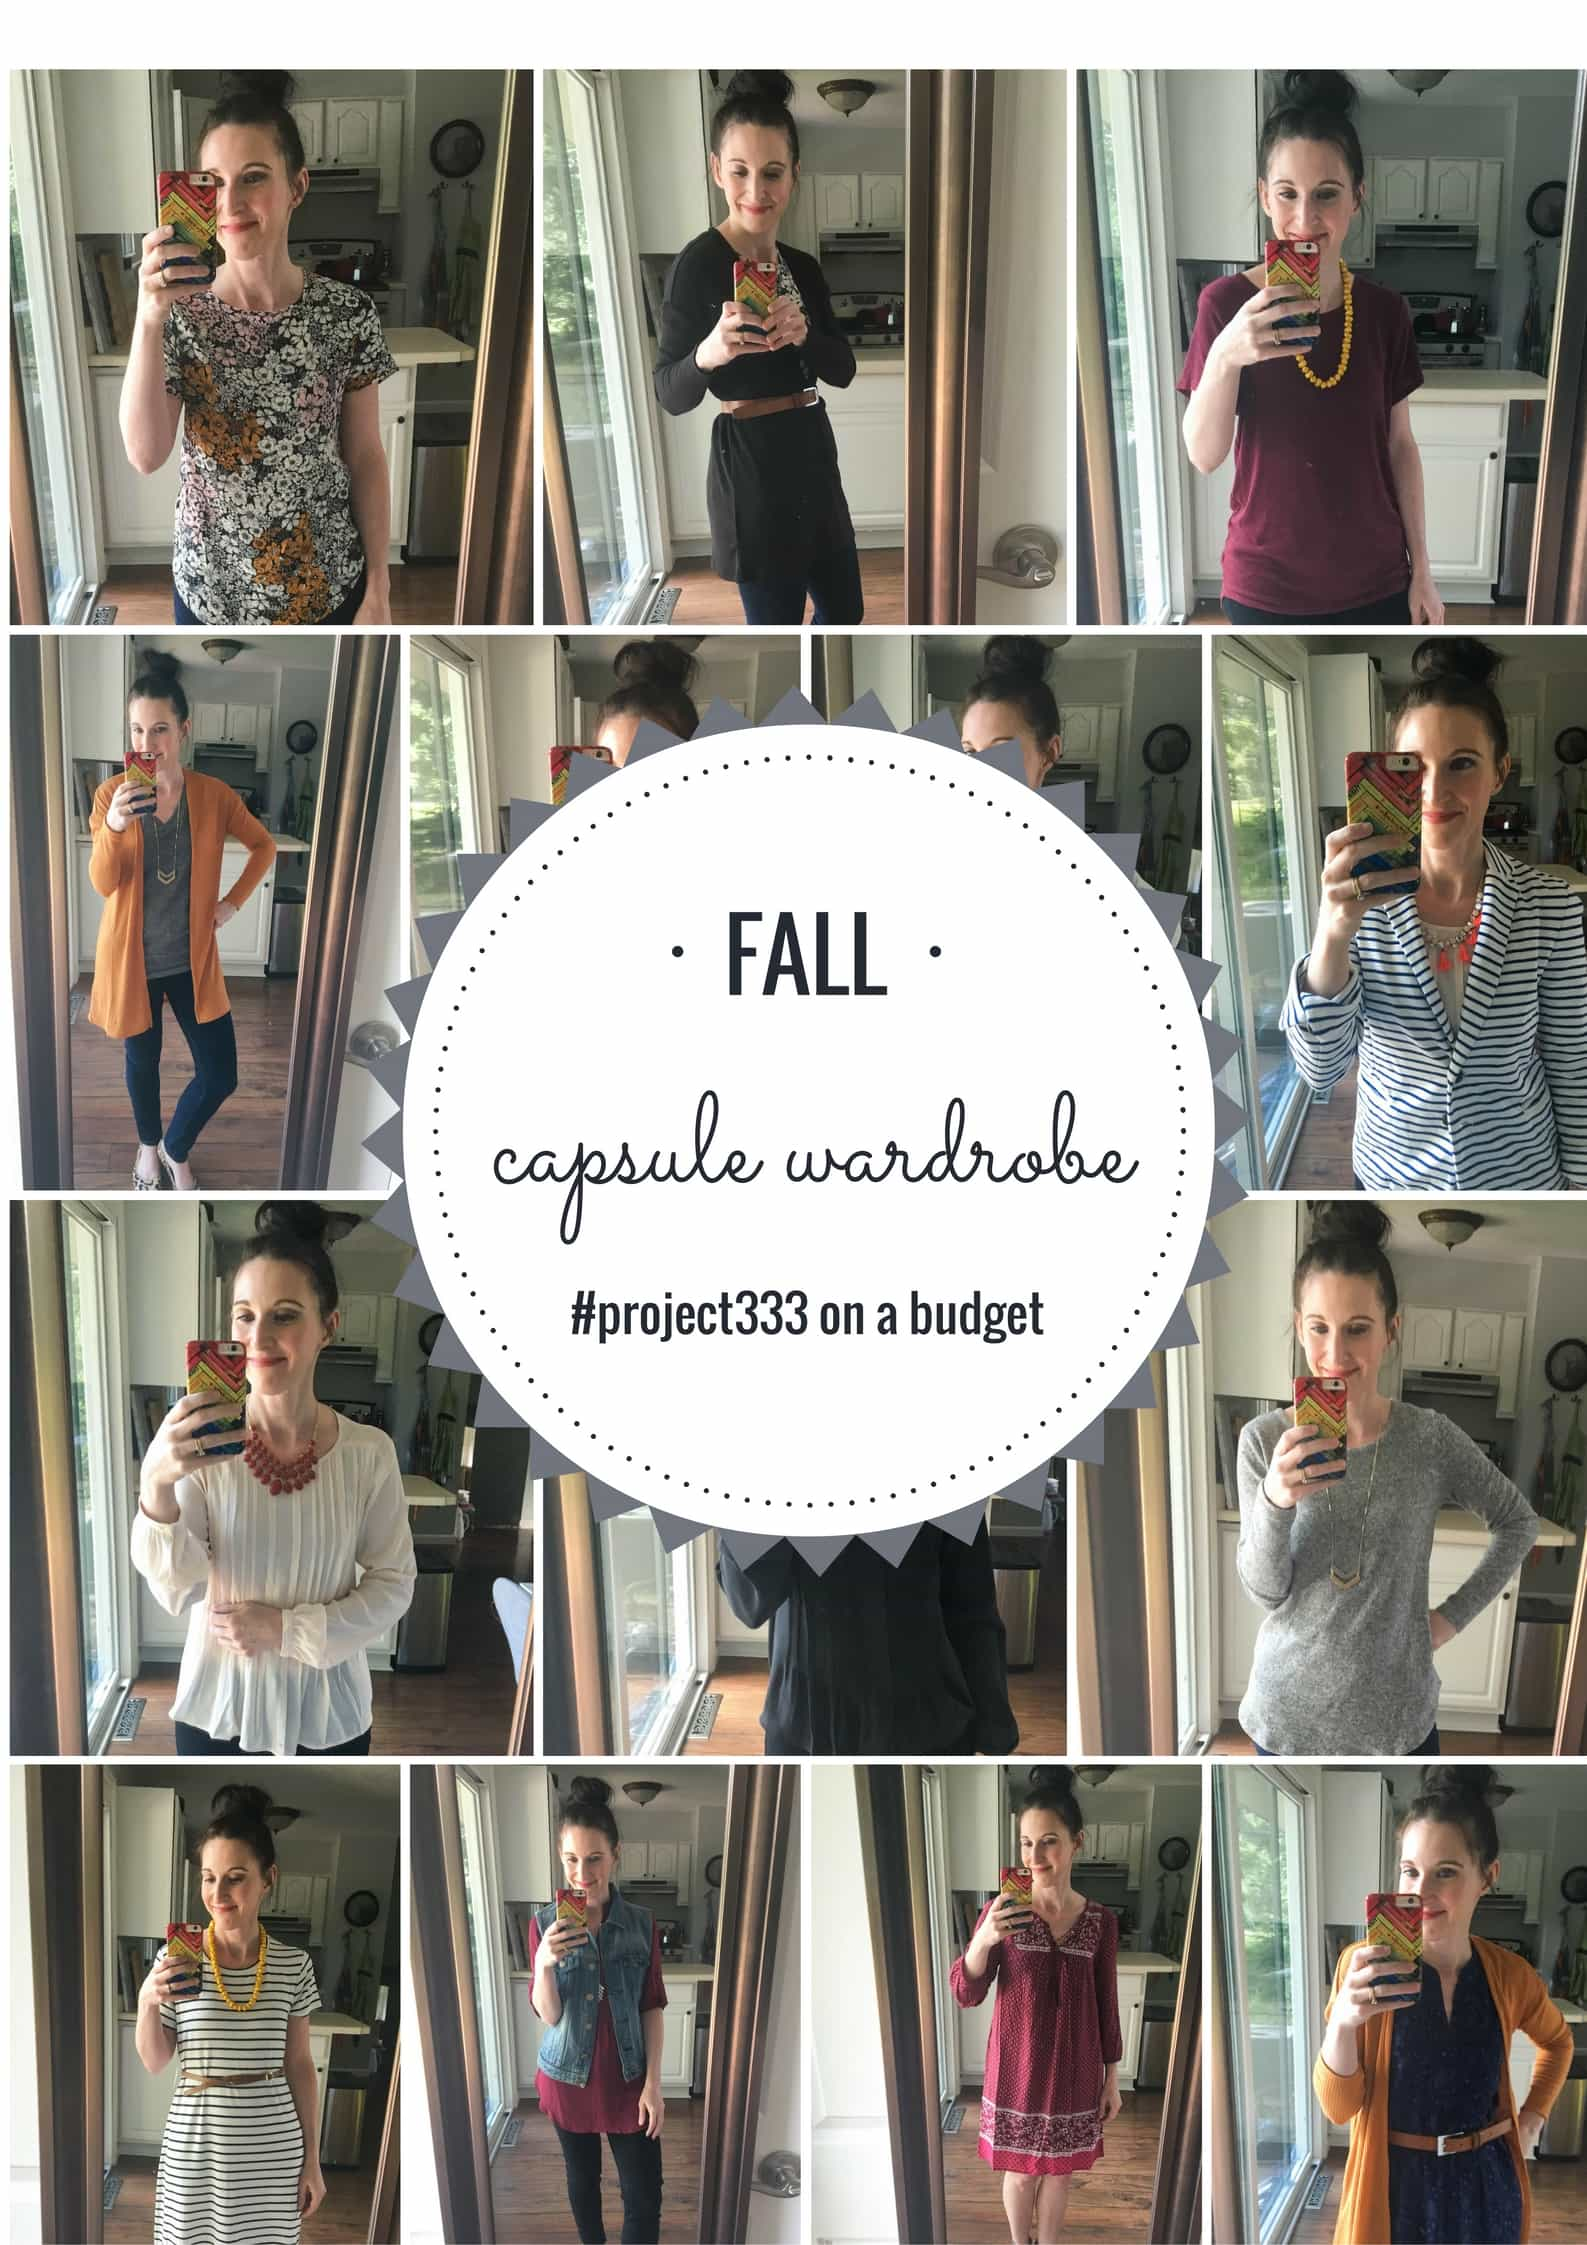 fall-capsule-wardrobe-ideas